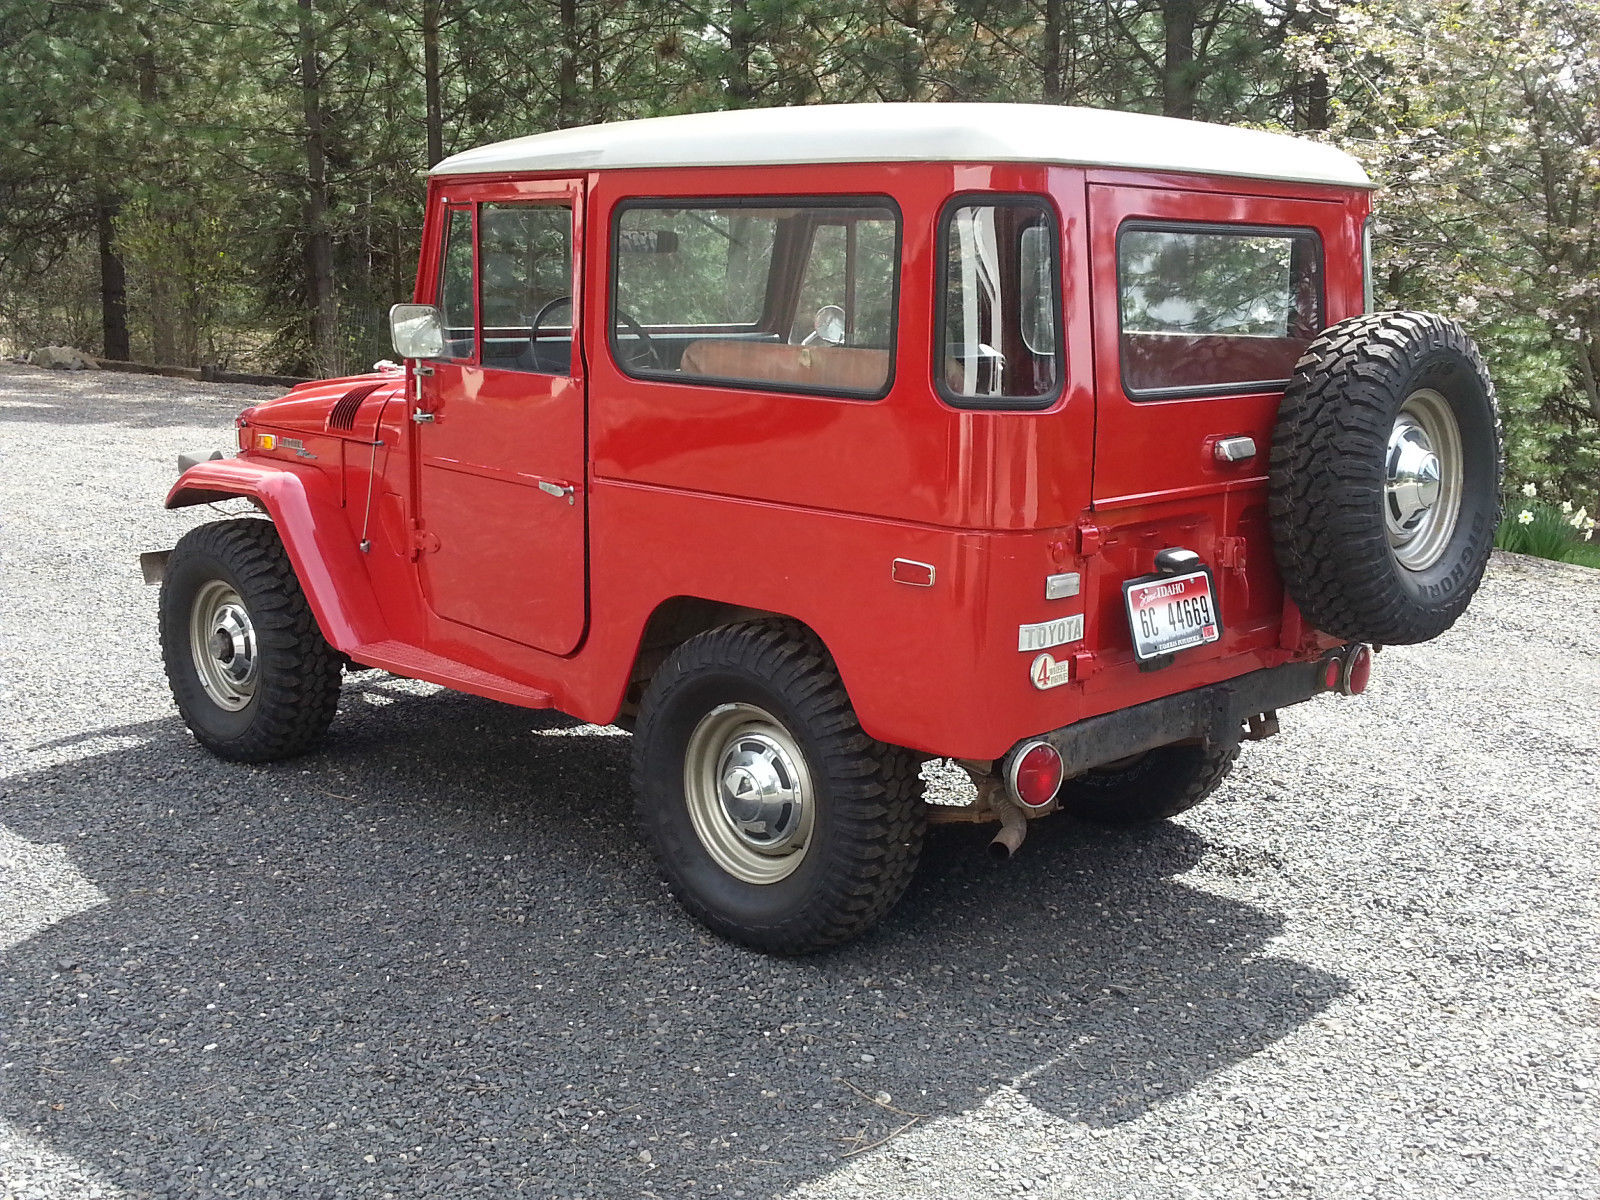 toyota fj40 land cruiser land cruiser of the day. Black Bedroom Furniture Sets. Home Design Ideas